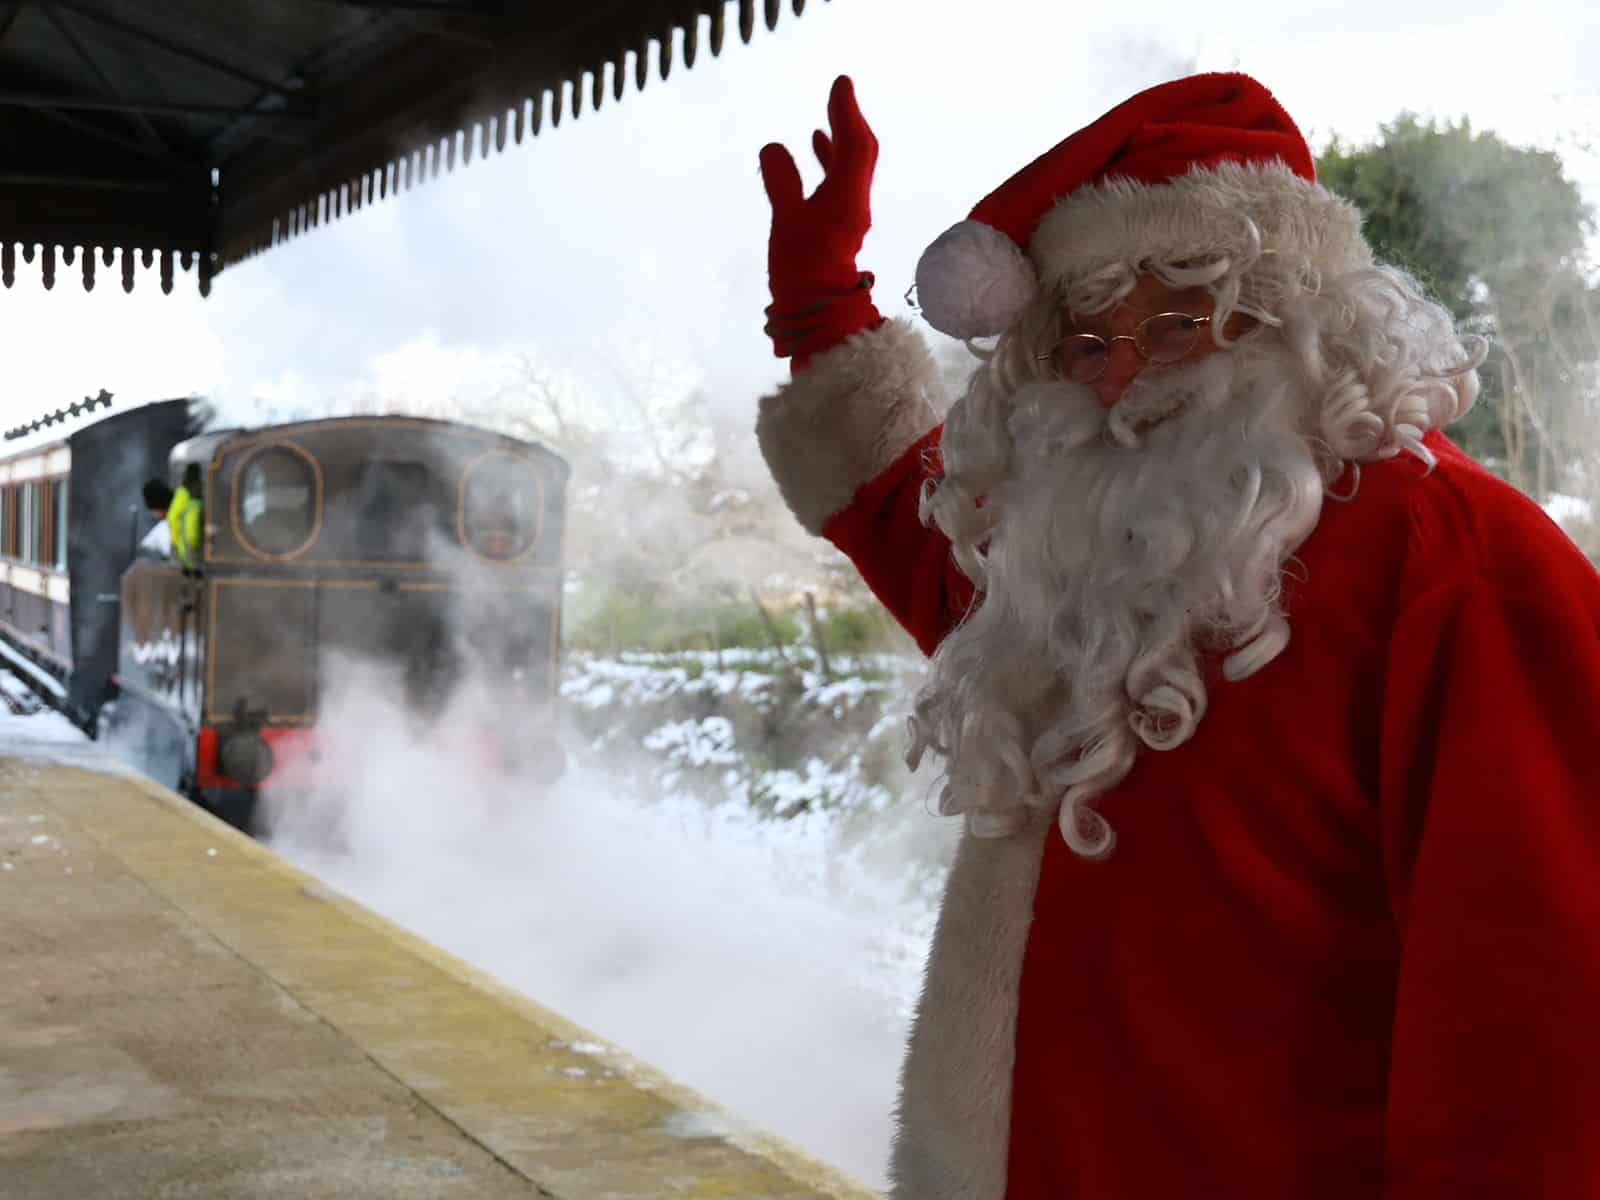 Santa and his steam train in the snow